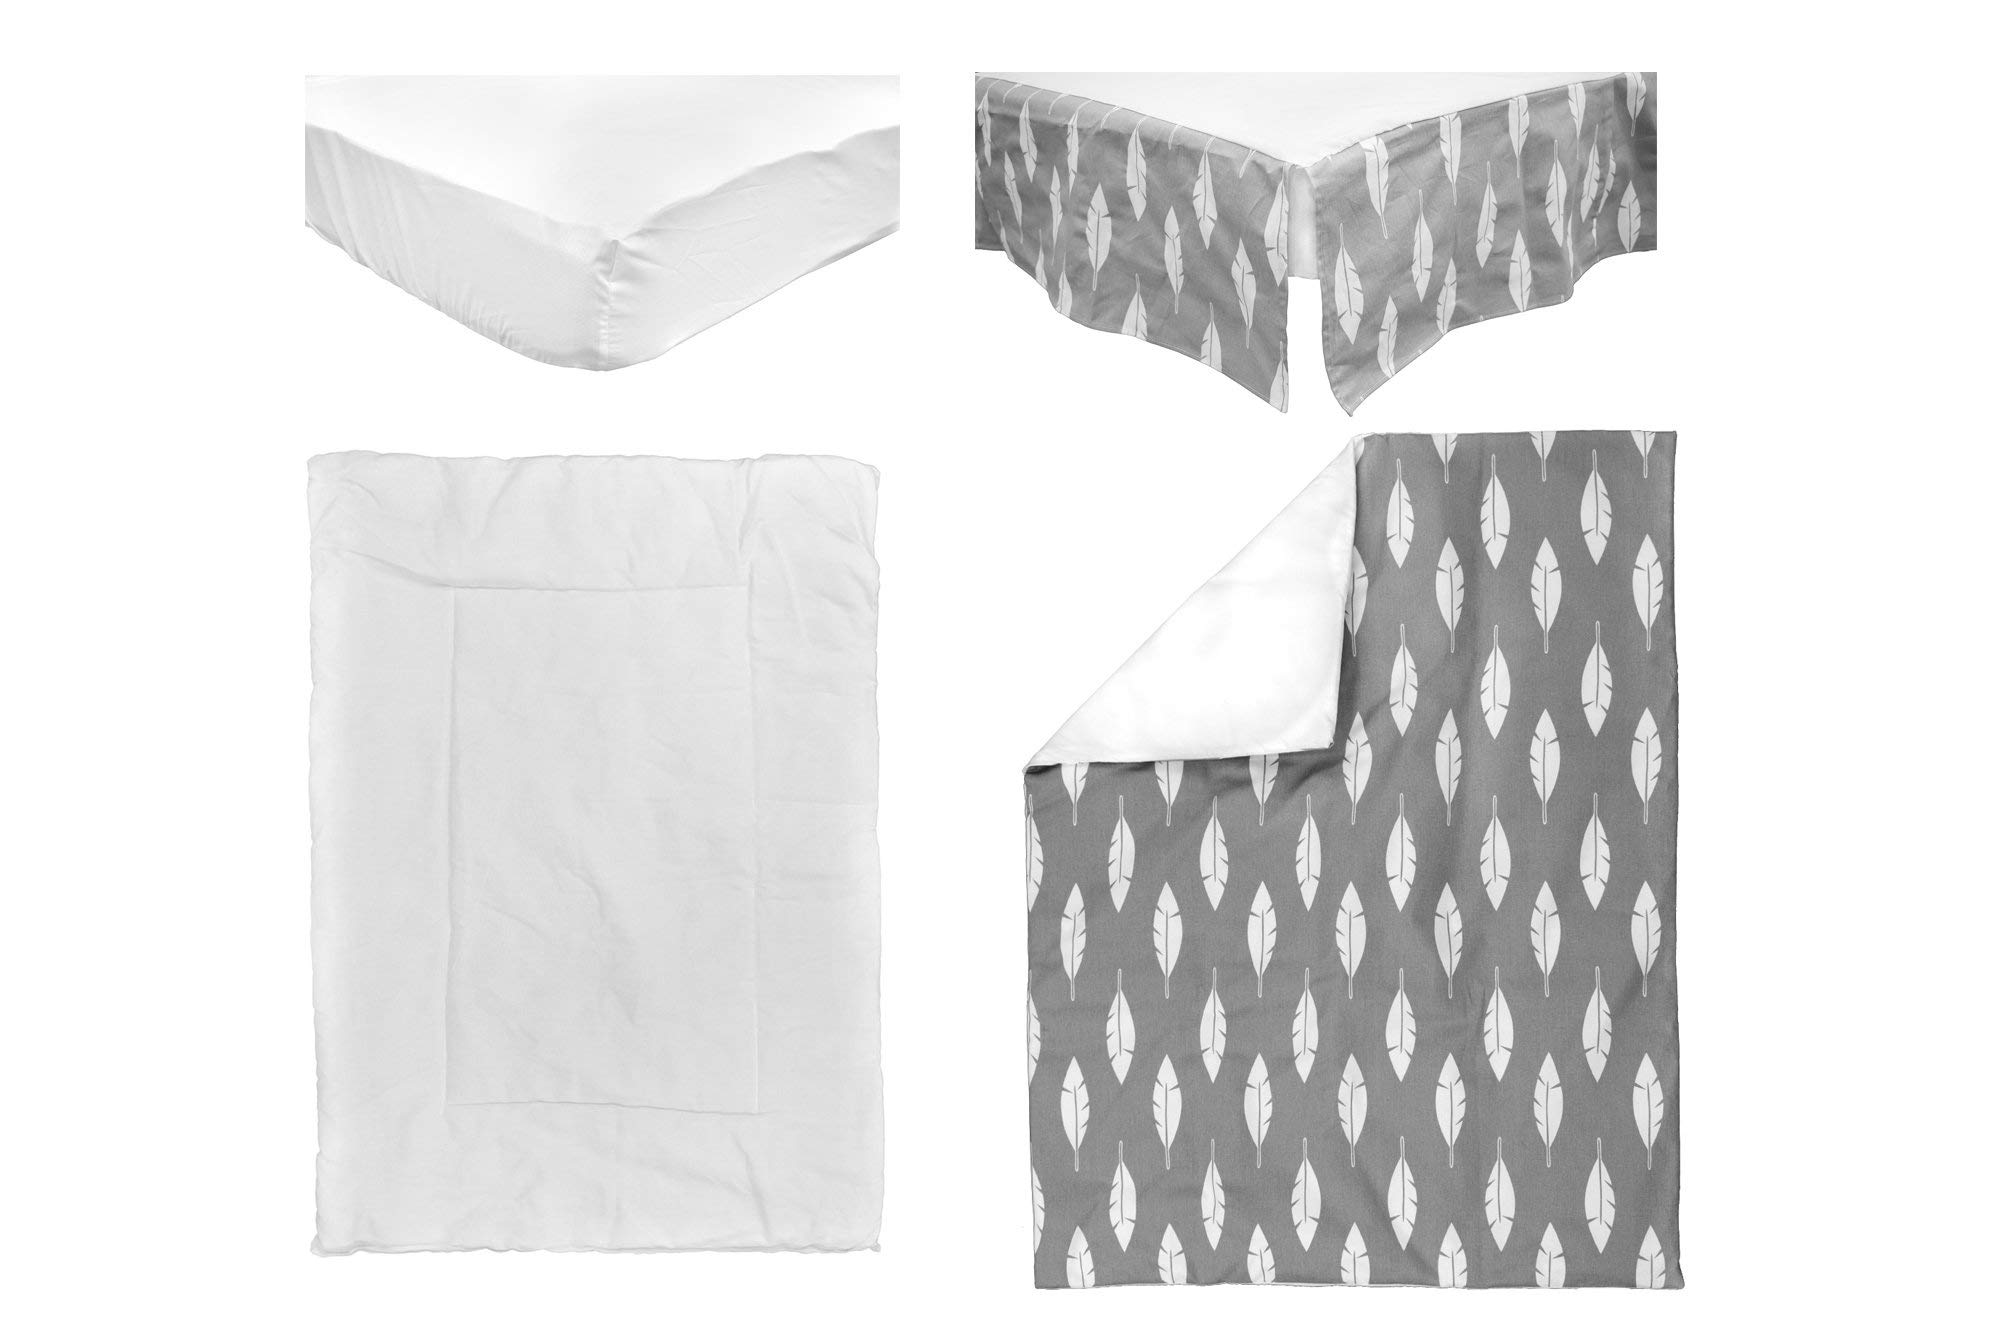 BOOBEYEH & DESIGN Baby Crib Bedding 4 Piece Set, Perfect for Baby Girls and Boys, Includes Gray and White Feather Design, Fitted Sheet, Crib Comforter, Comforter Cover, Skirt. by BOOBEYEH & DESIGN (Image #7)